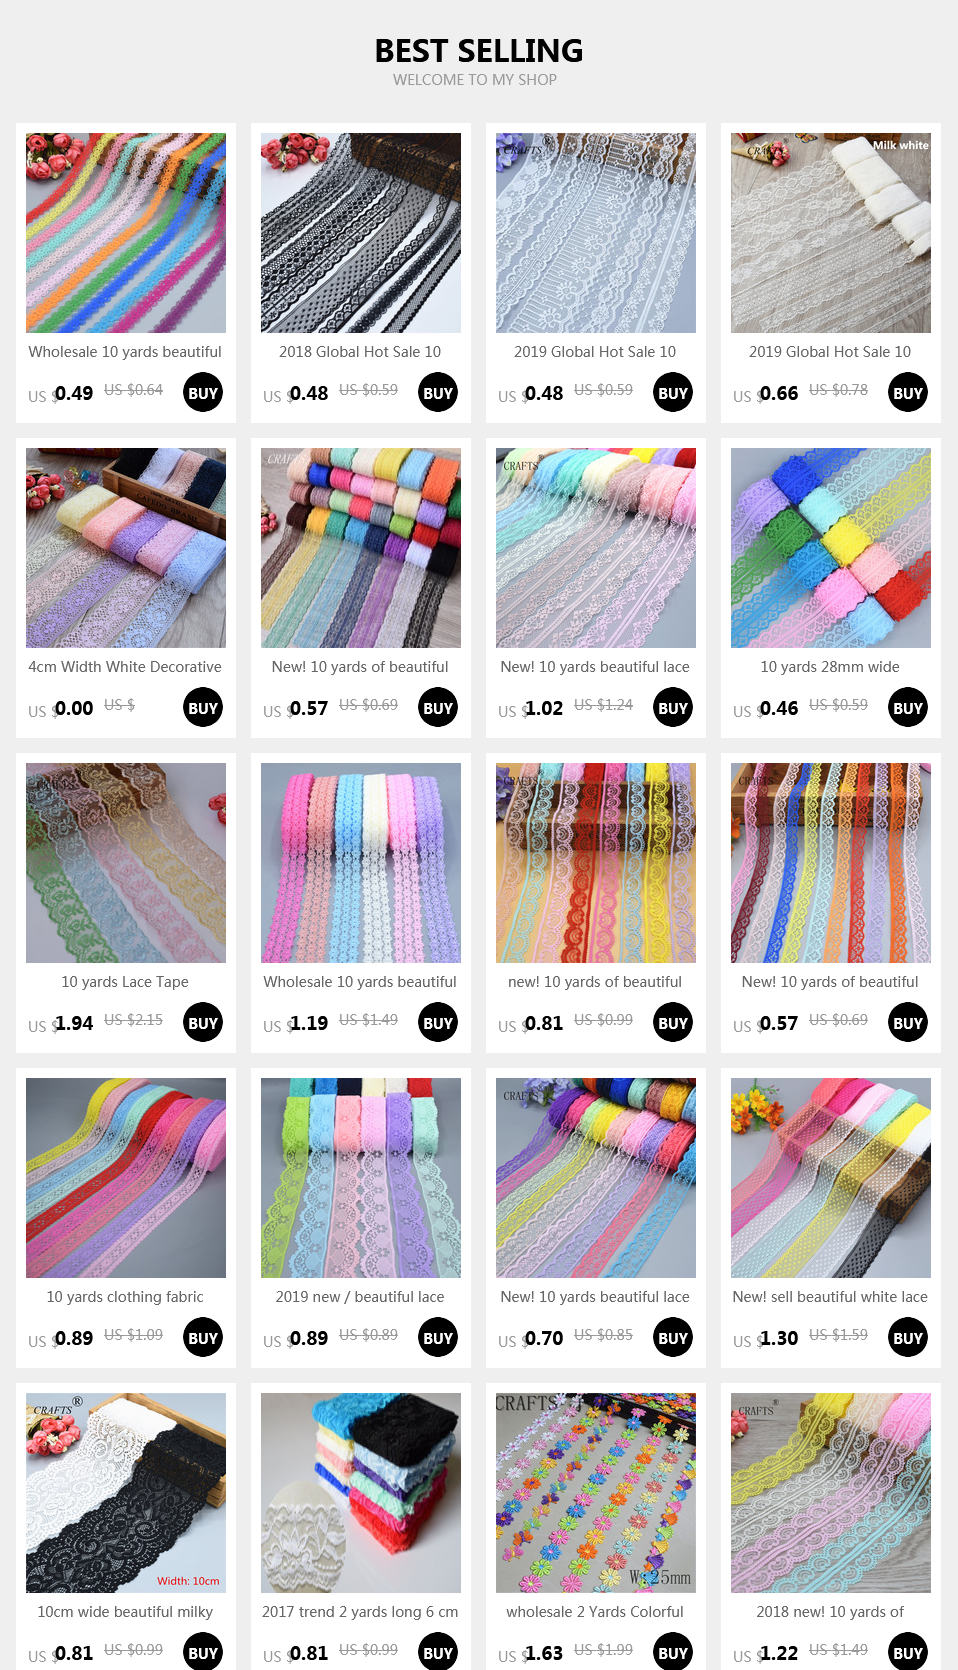 HTB1UHiCXv1G3KVjSZFk761K4XXao New! 10 yards of beautiful lace ribbon, 4.5 cm wide, DIY Clothing / Accessories / floral accessories, etc.